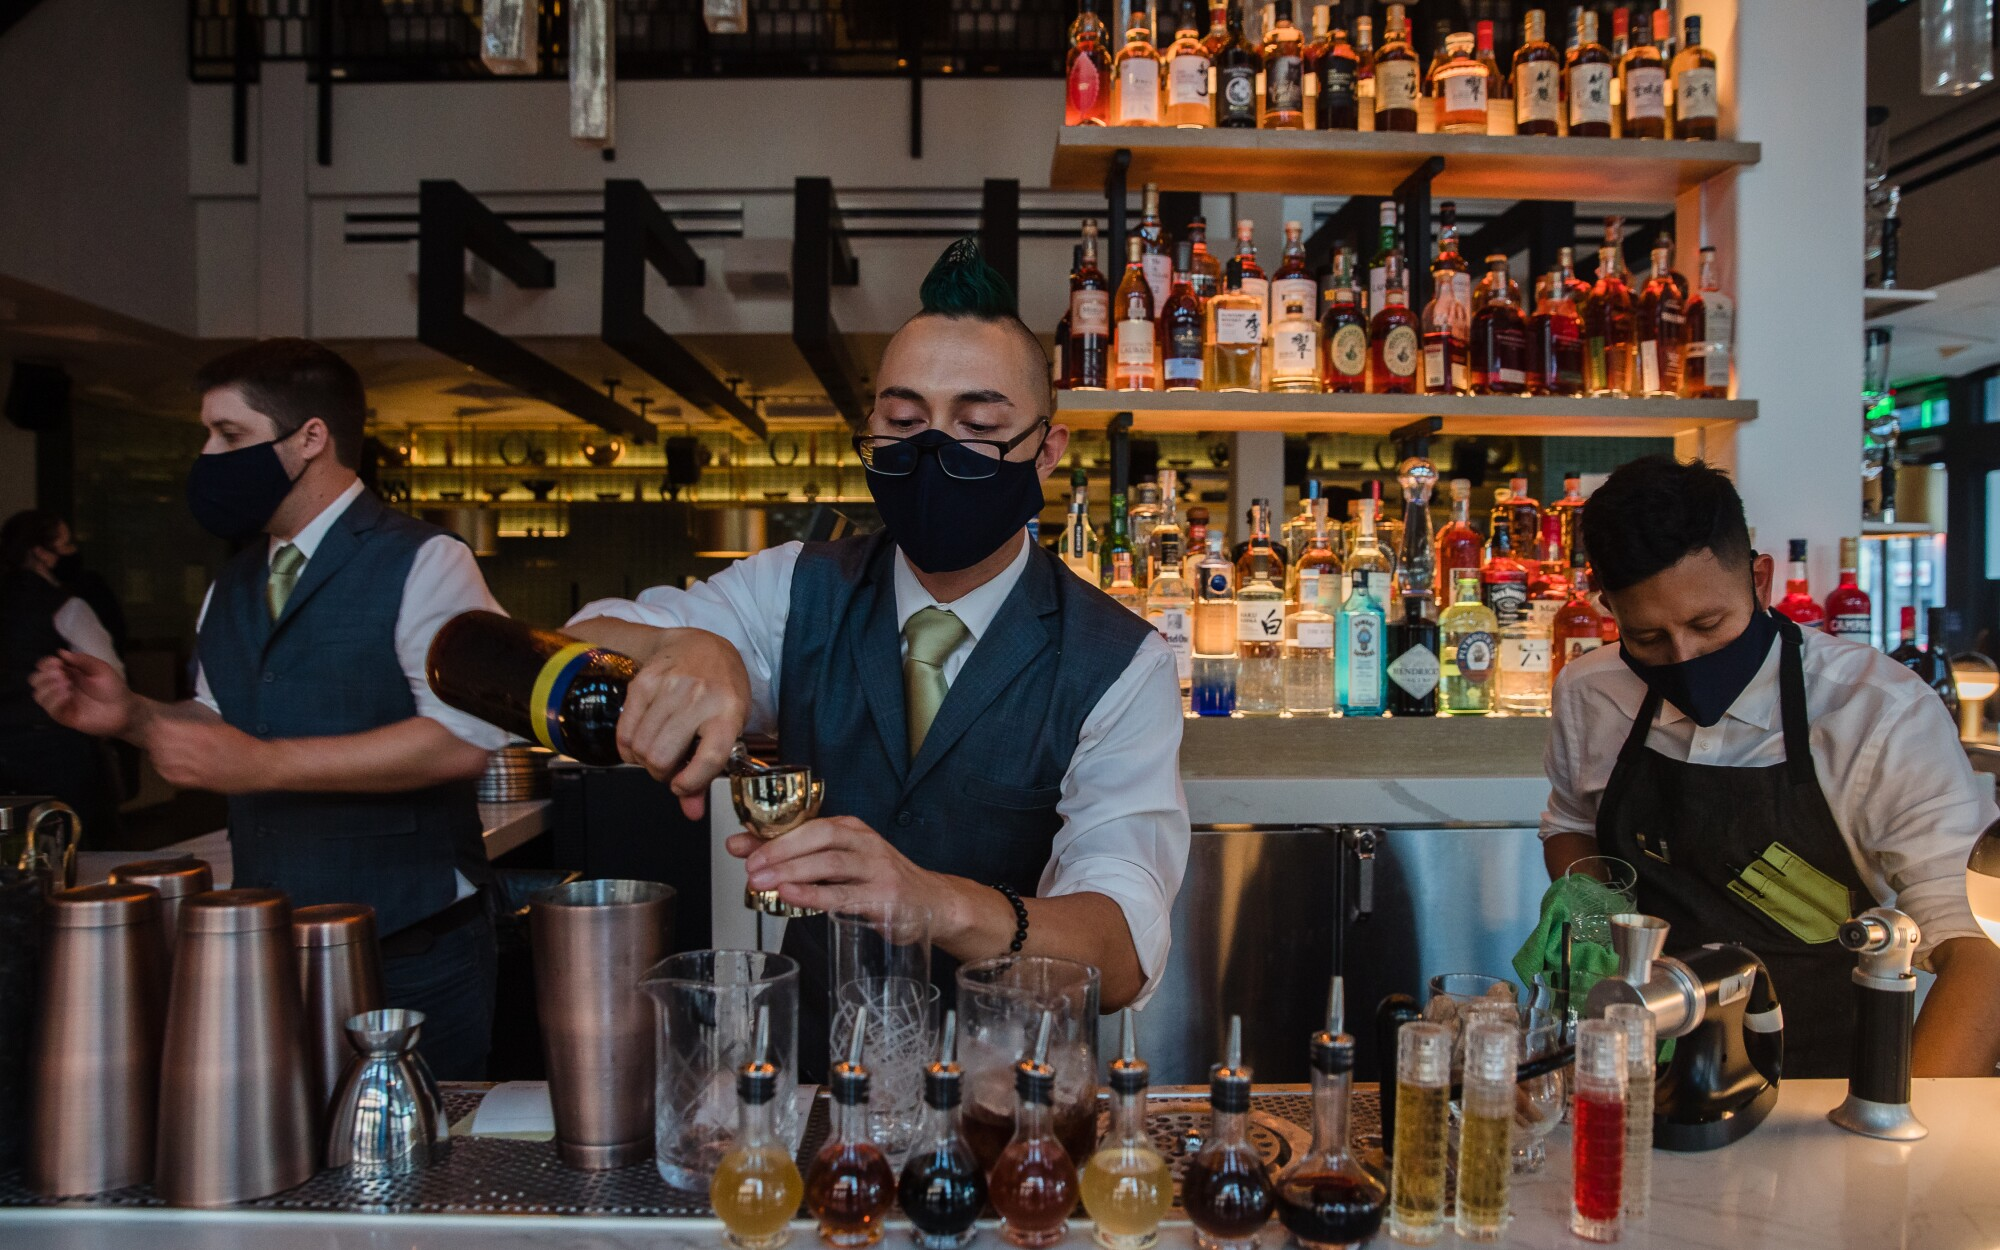 Nick Hirsch, center, prepares a drink at the Huntress, during a soft opening Thursday evening in the Gaslamp Quarter.